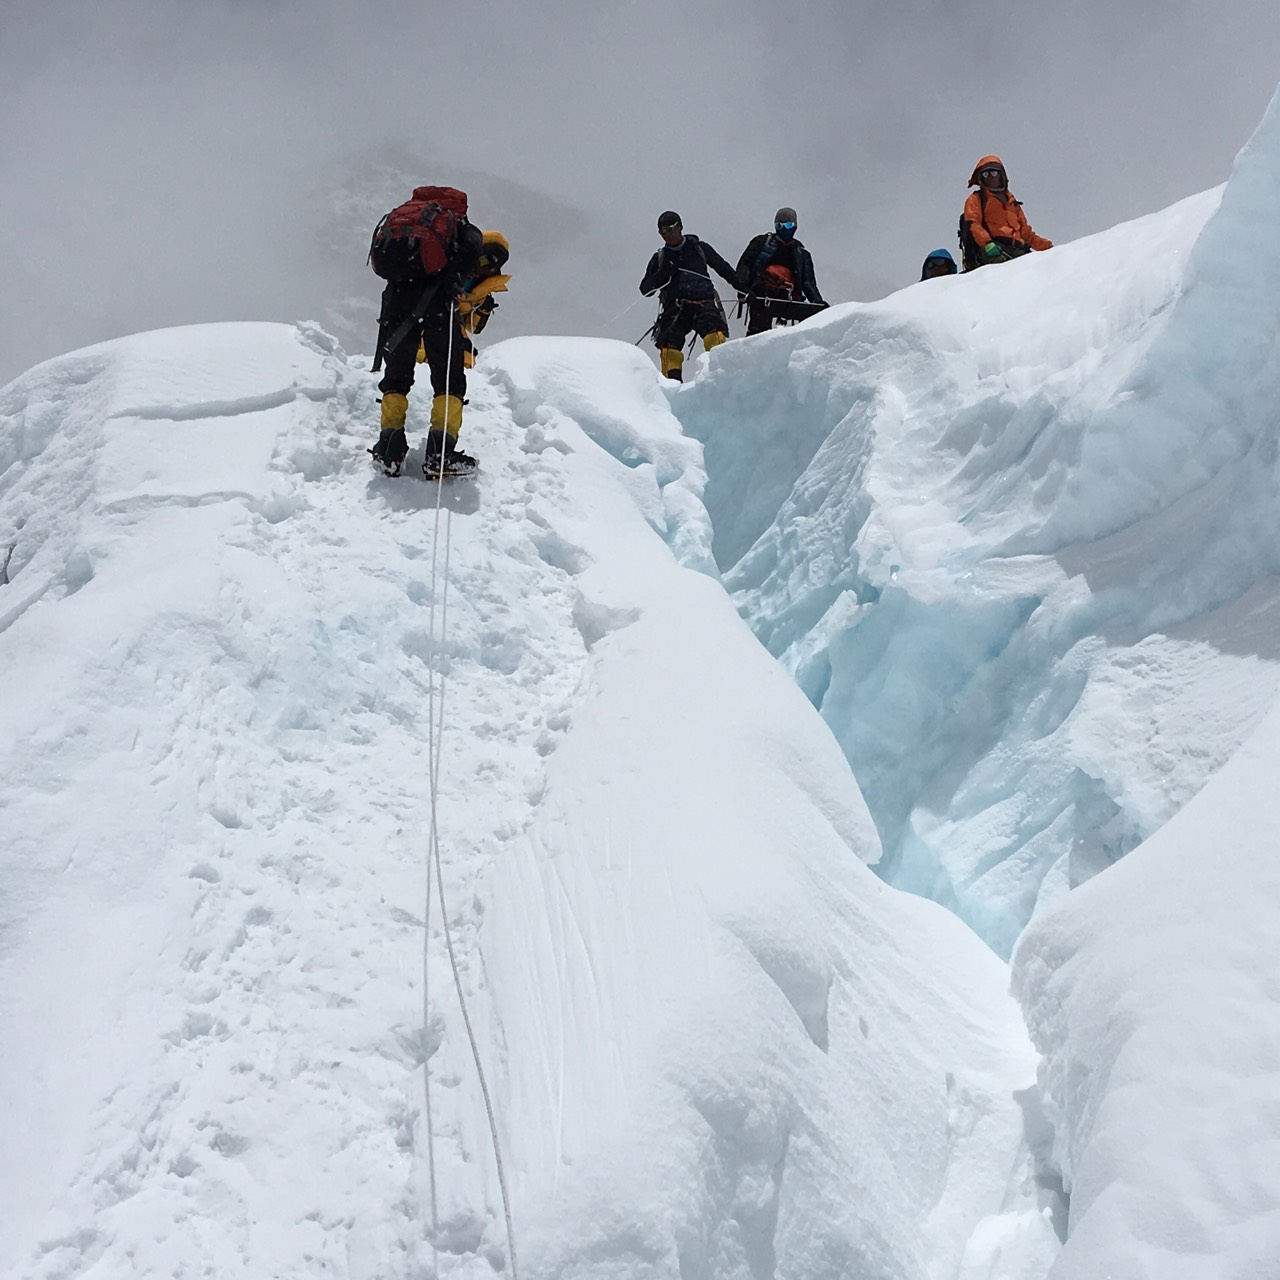 On the way - Mt. Kanchenjunga Expedition